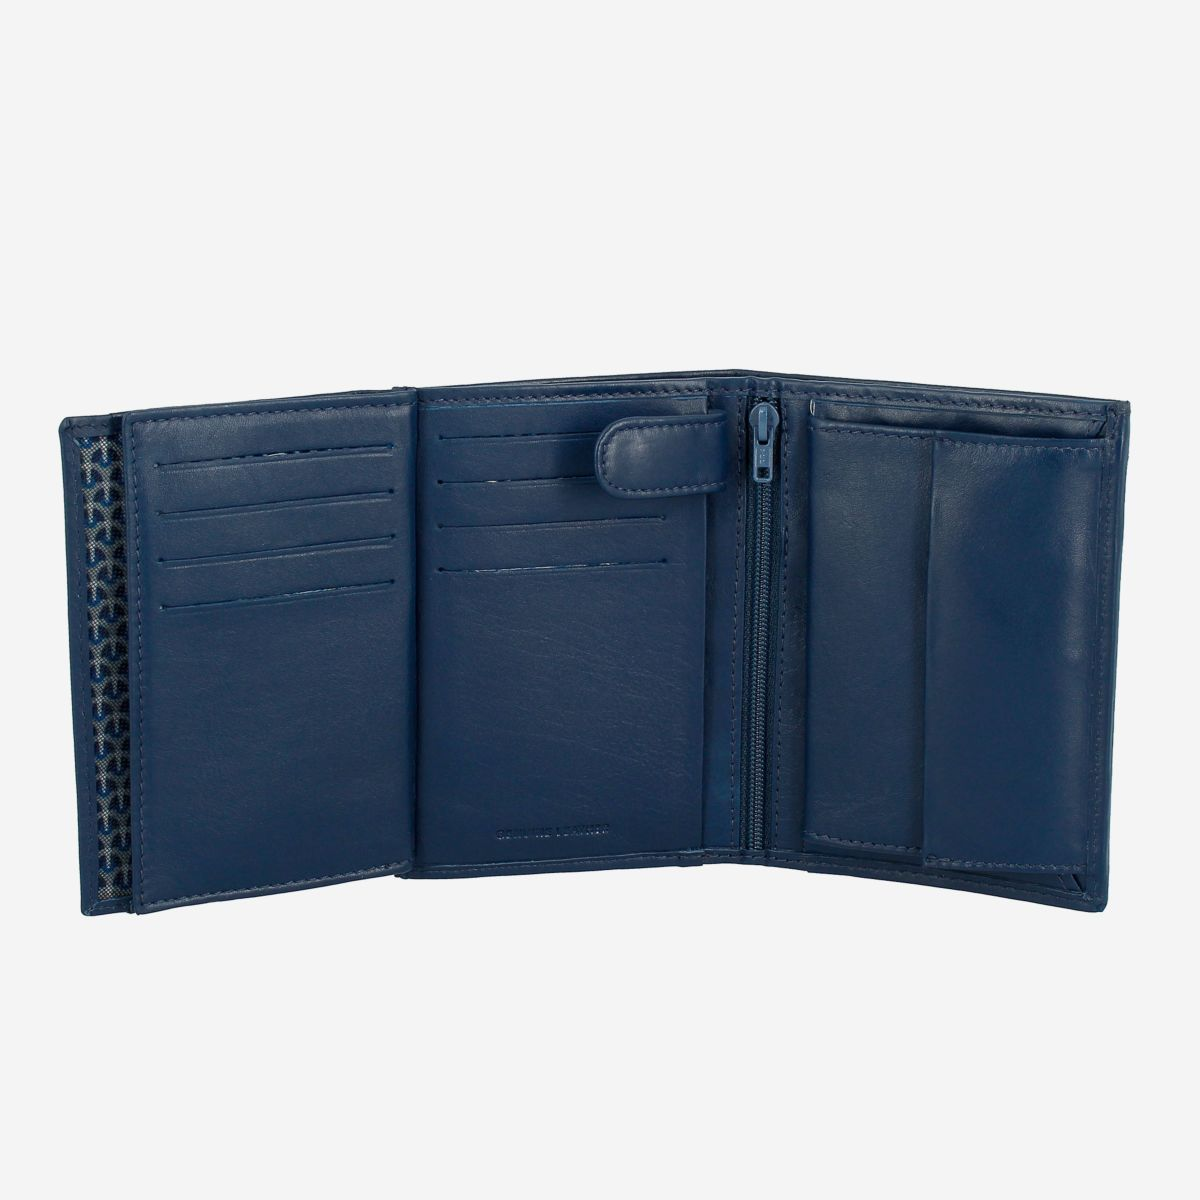 NUVOLA PELLE Mens Vertical Wallet With Coin Pocket - Blue